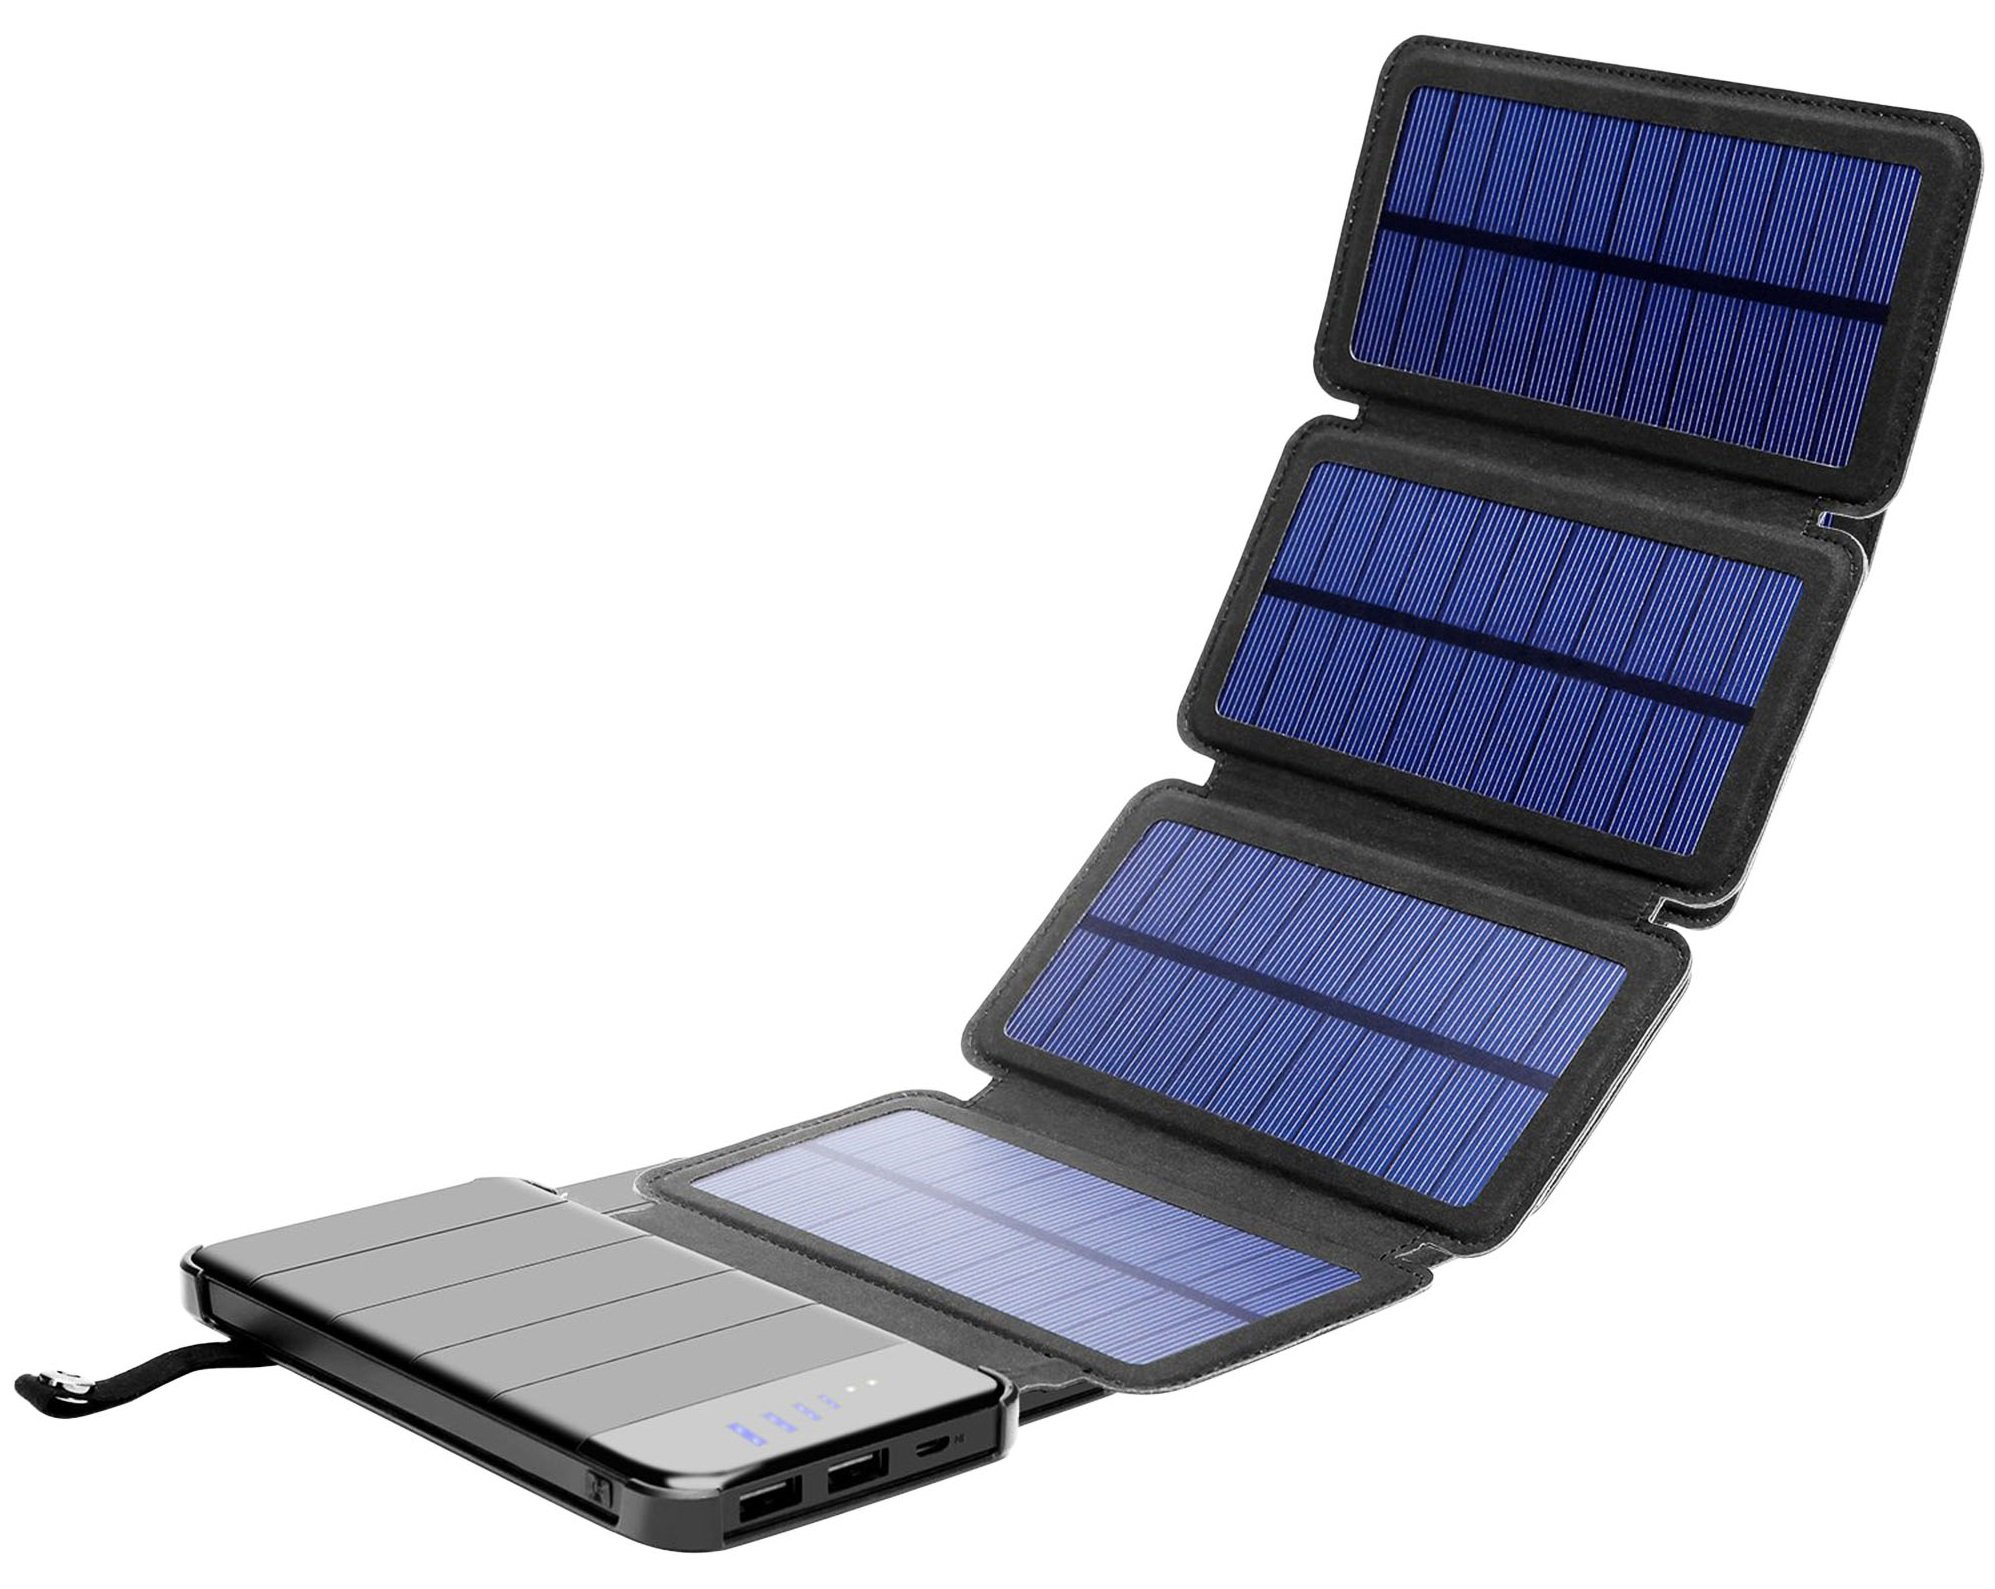 Solar Phone Charger 10.000mAh Power Bank - Portable Smartphone & iPhone Battery + Emergency Flashlight - (2) USB Ports + (4) Foldable Solar Panels - Fast Charging Smart IC Technology - Camping, Hiking by iBose